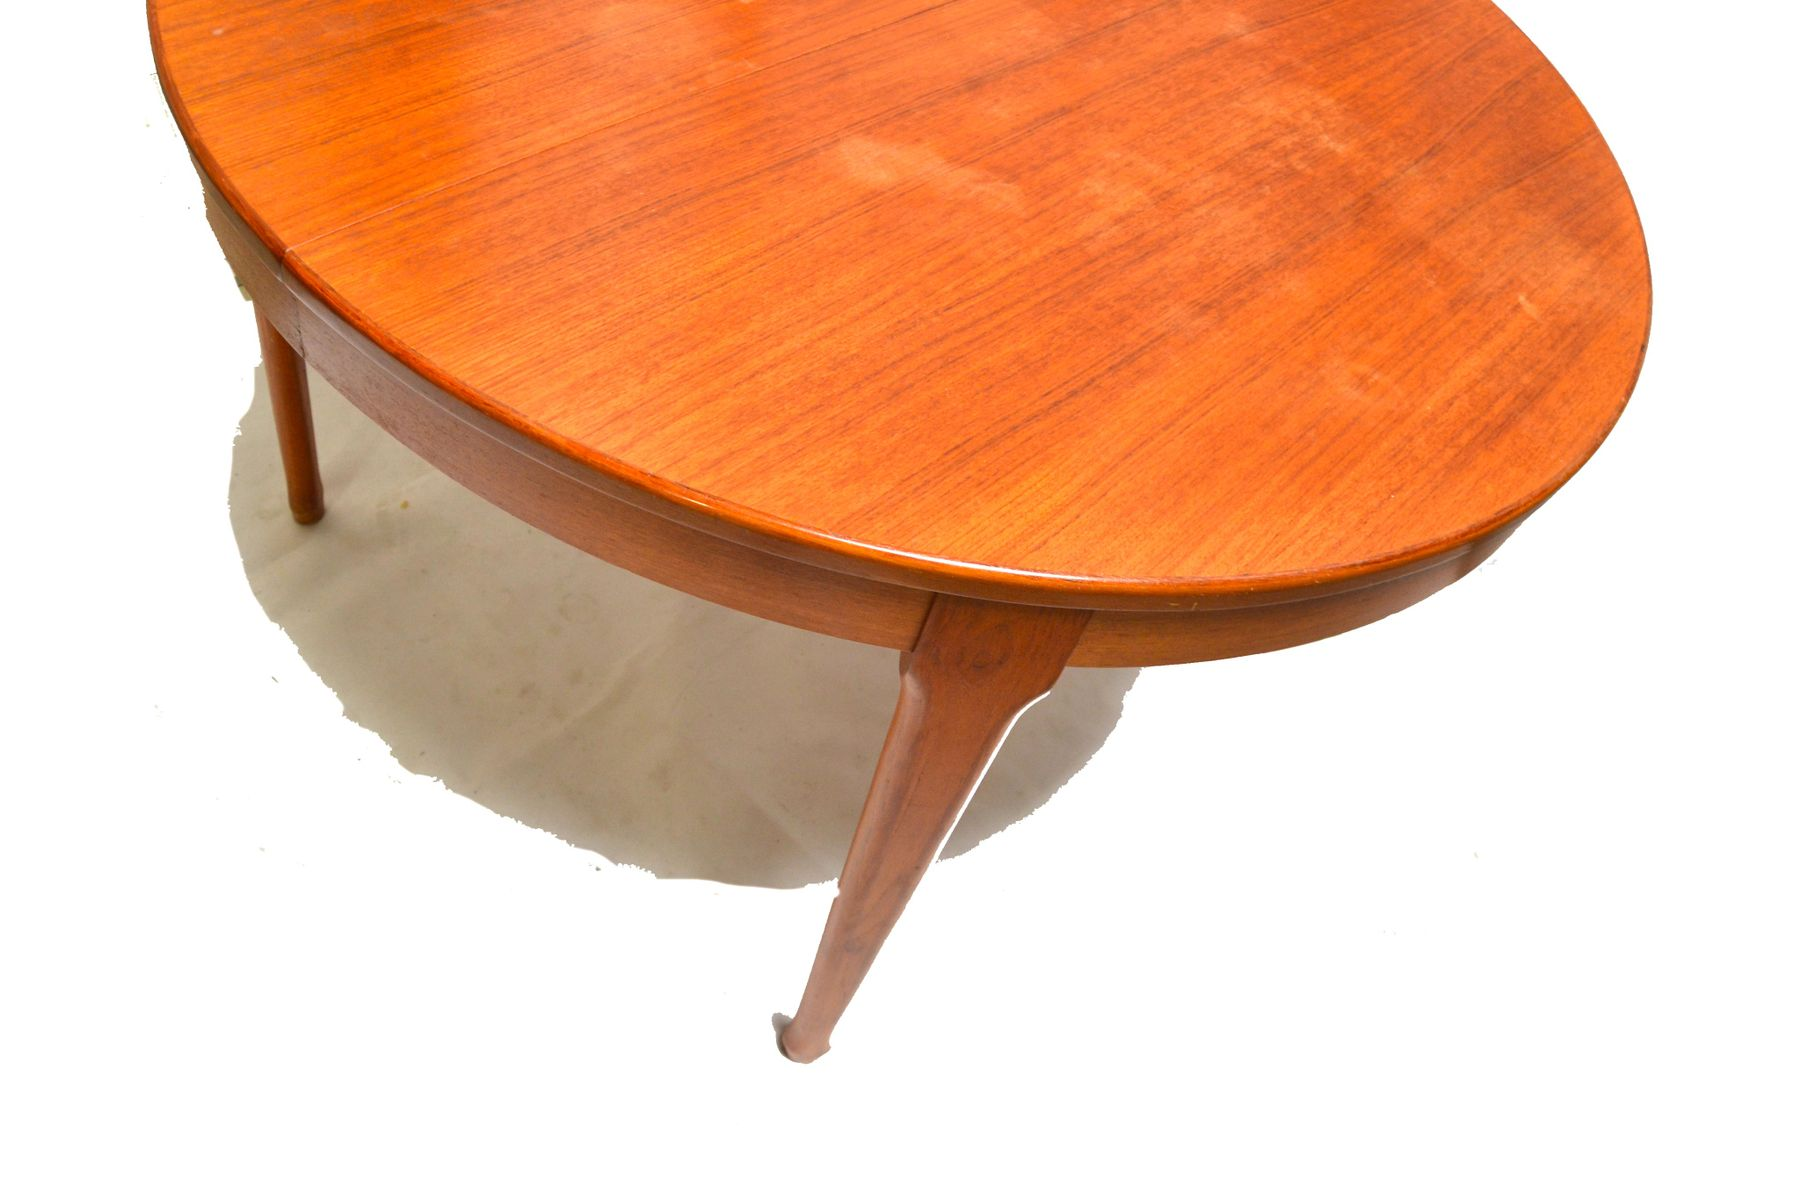 Vintage extendable round dining table from meubles tv for for Mueble tv vintage